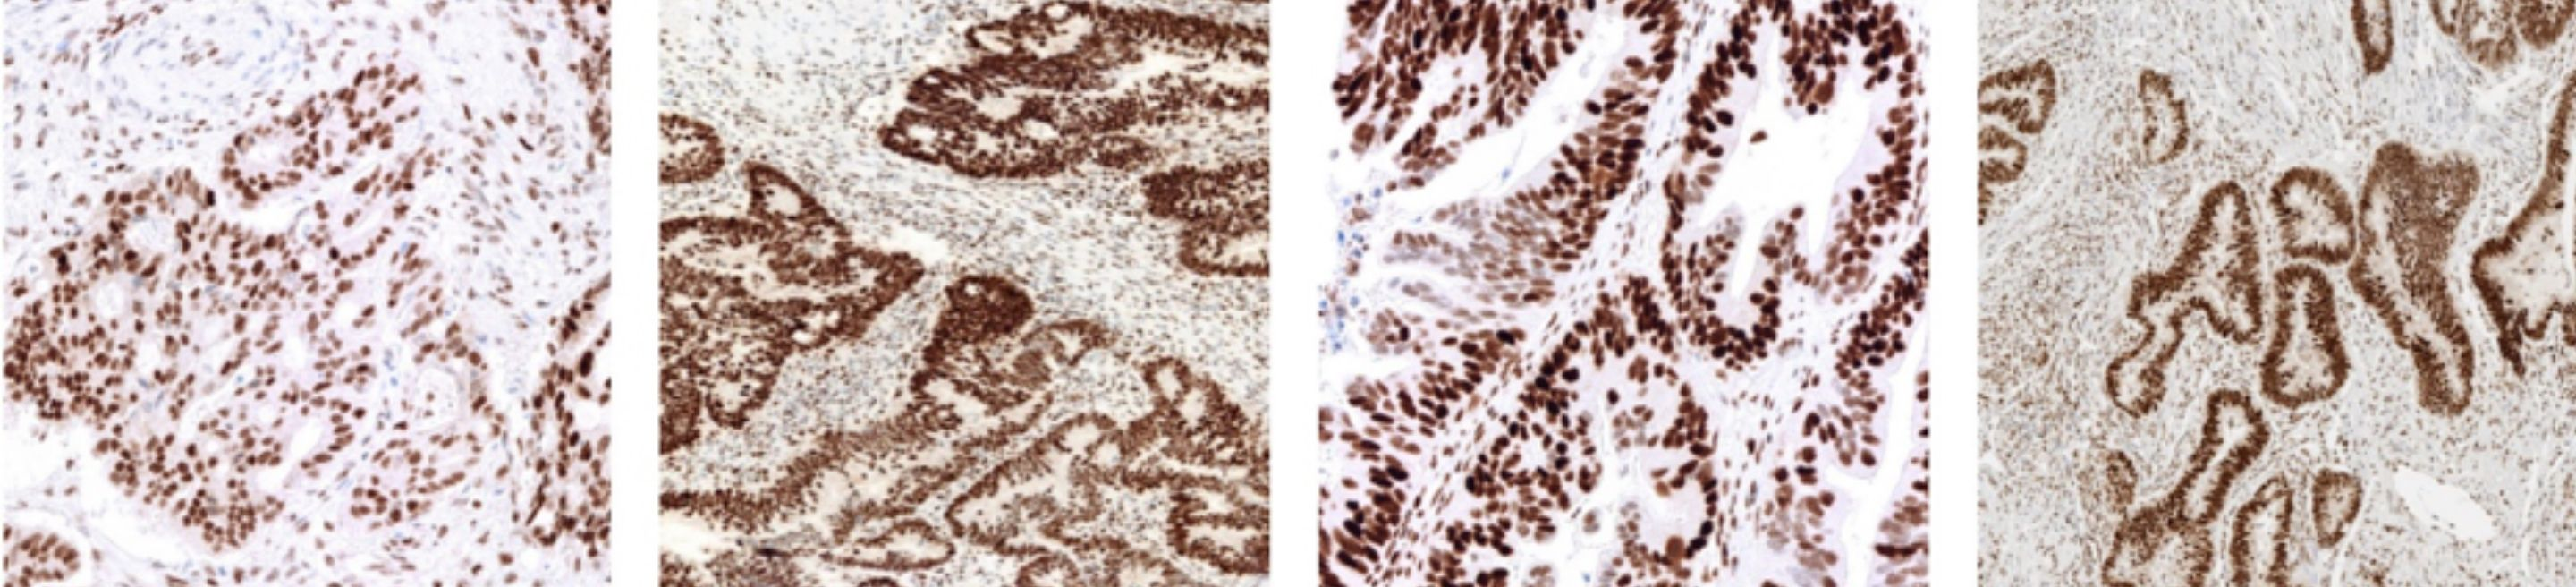 Colorectal cancer staining positive using the VENTANA MMR IHC Panel